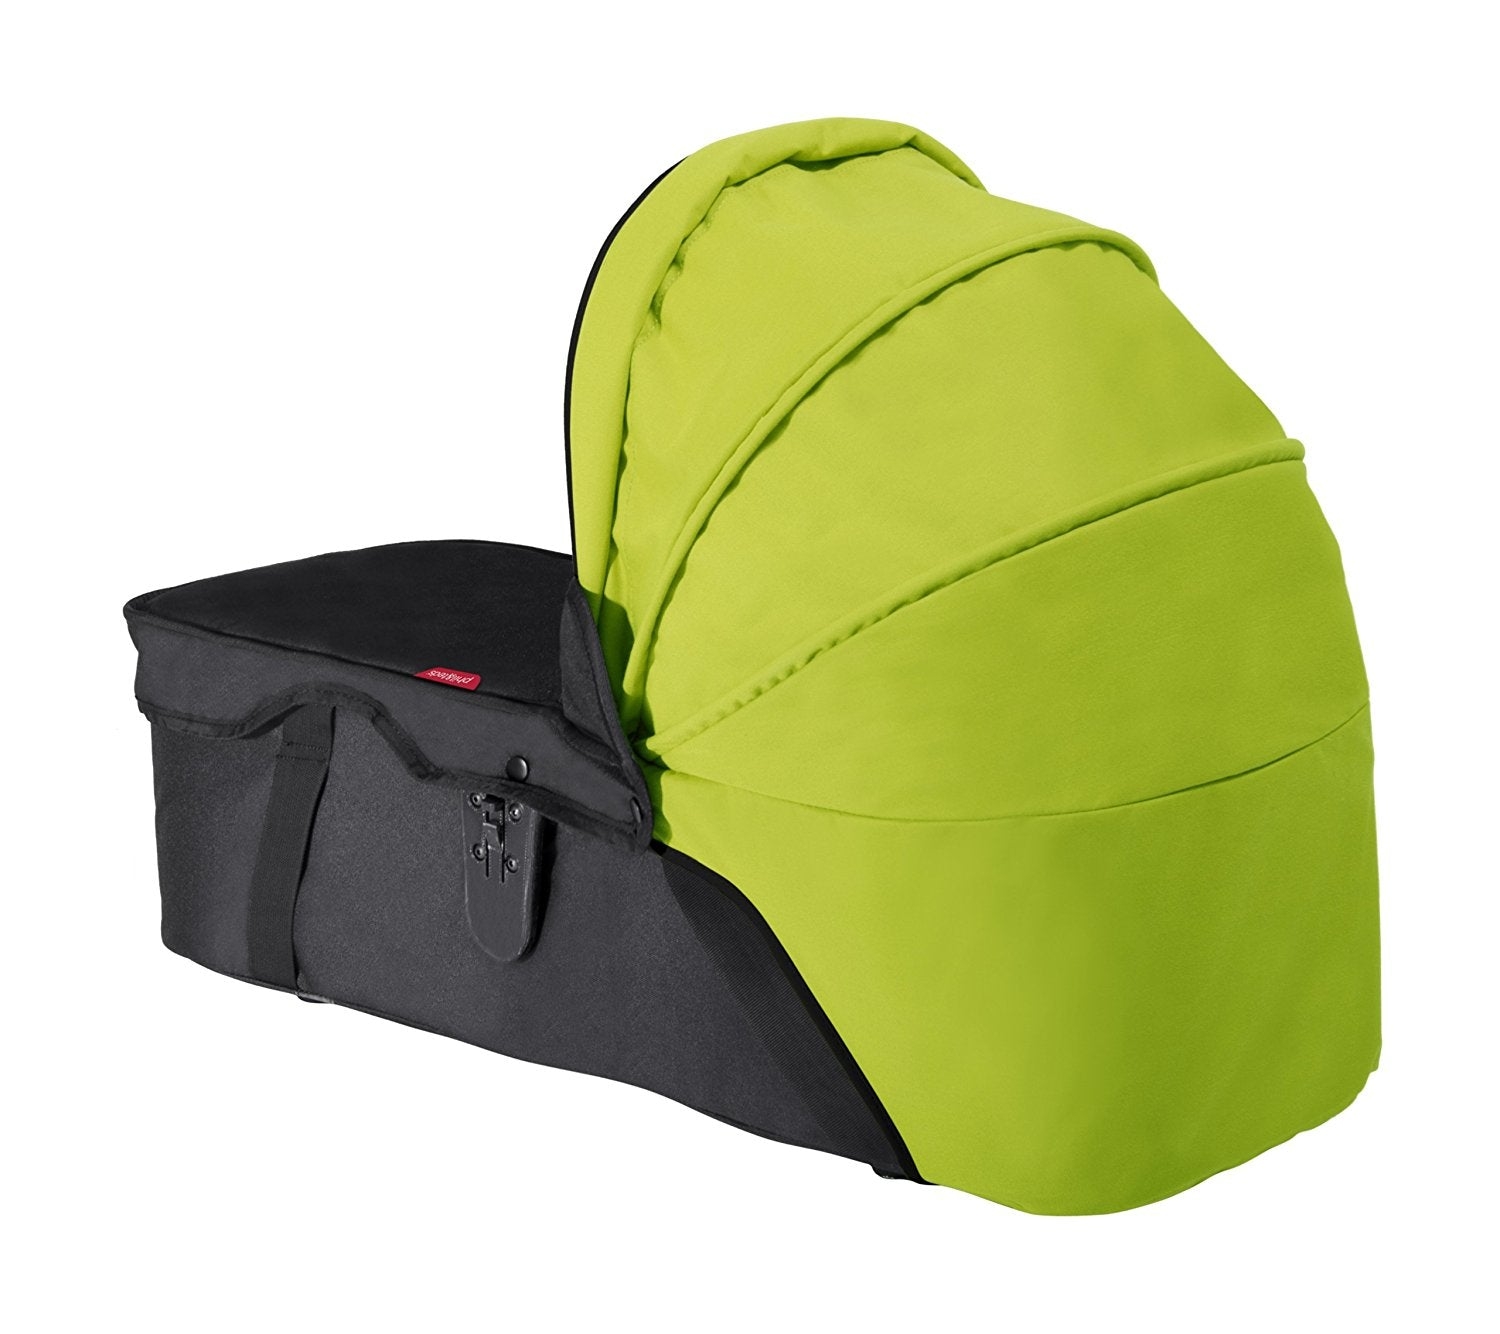 Phil & Teds Navigator Carry Cot Sunhood - Apple